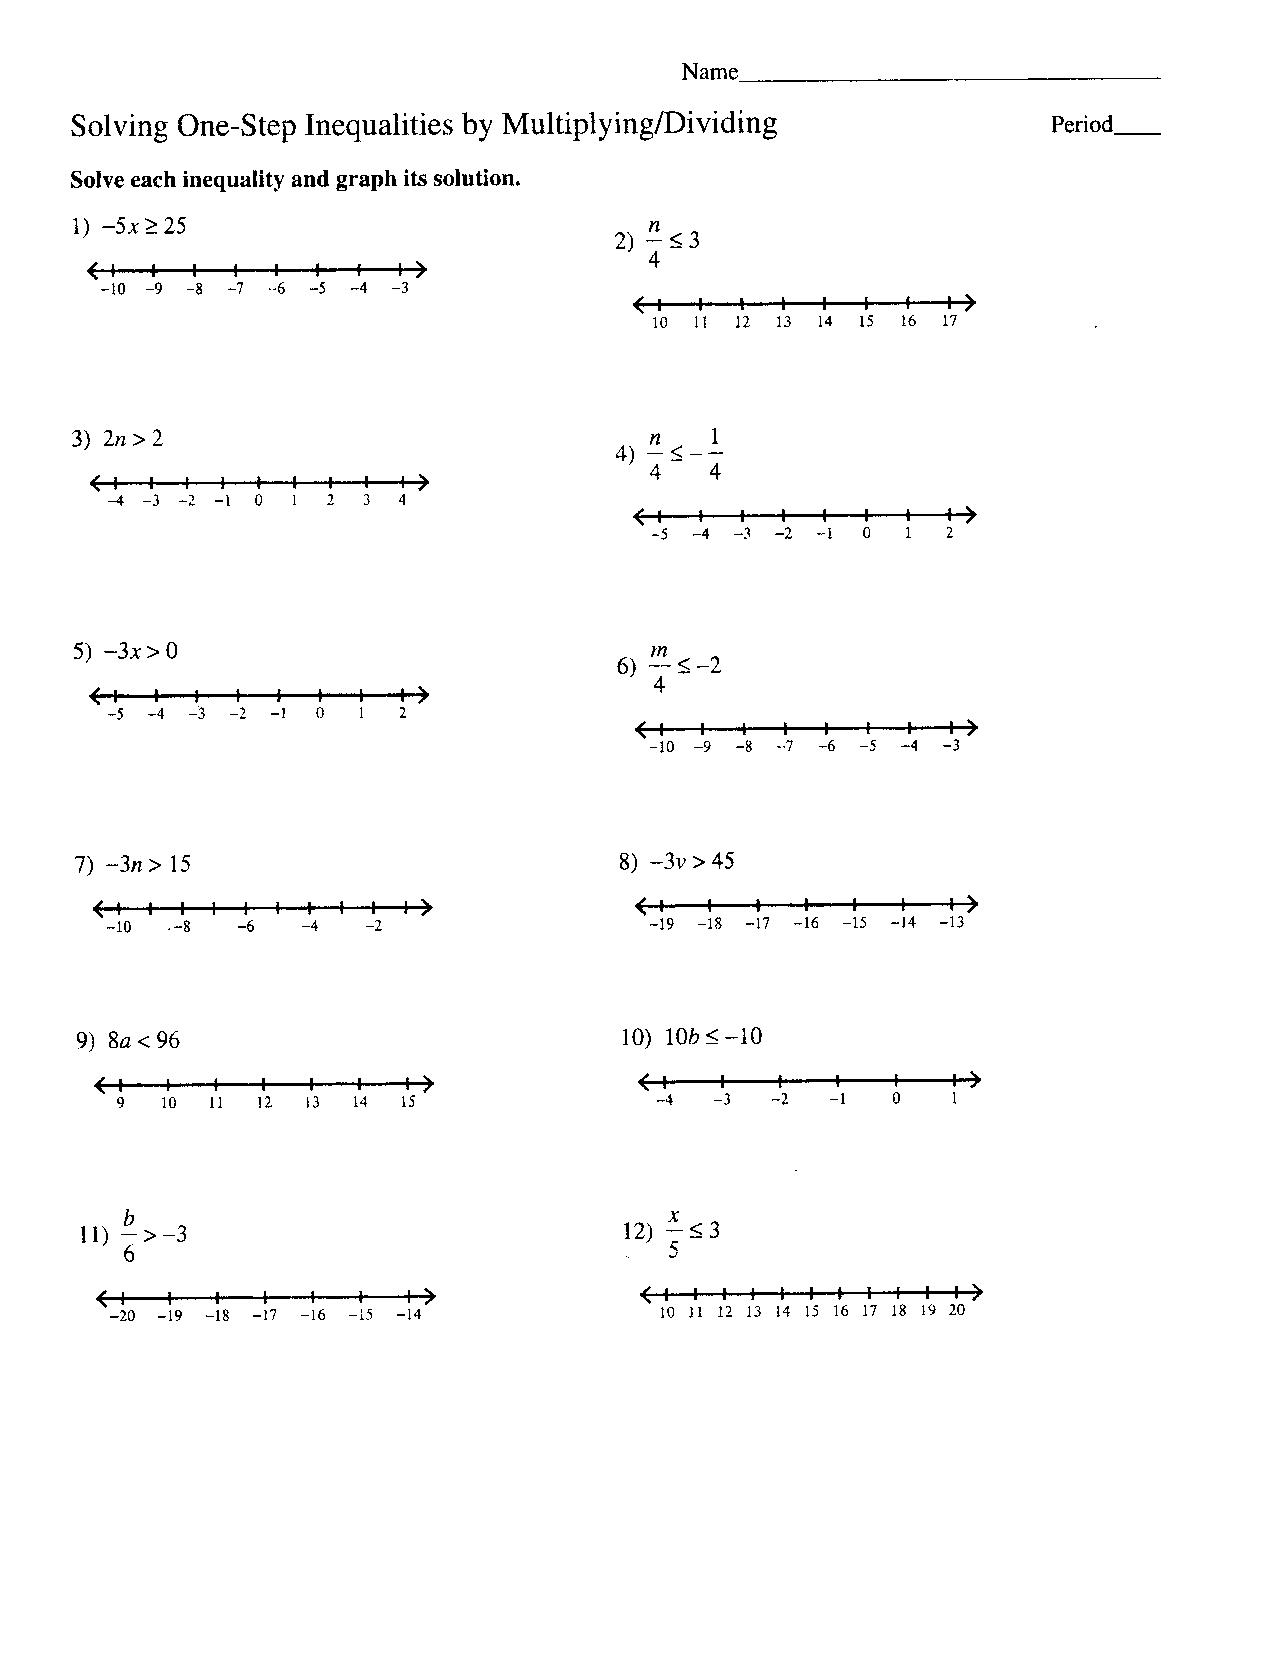 worksheet Solving And Graphing Inequalities Worksheet Pdf algebra problems and worksheets algebraic long division inequalities worksheets